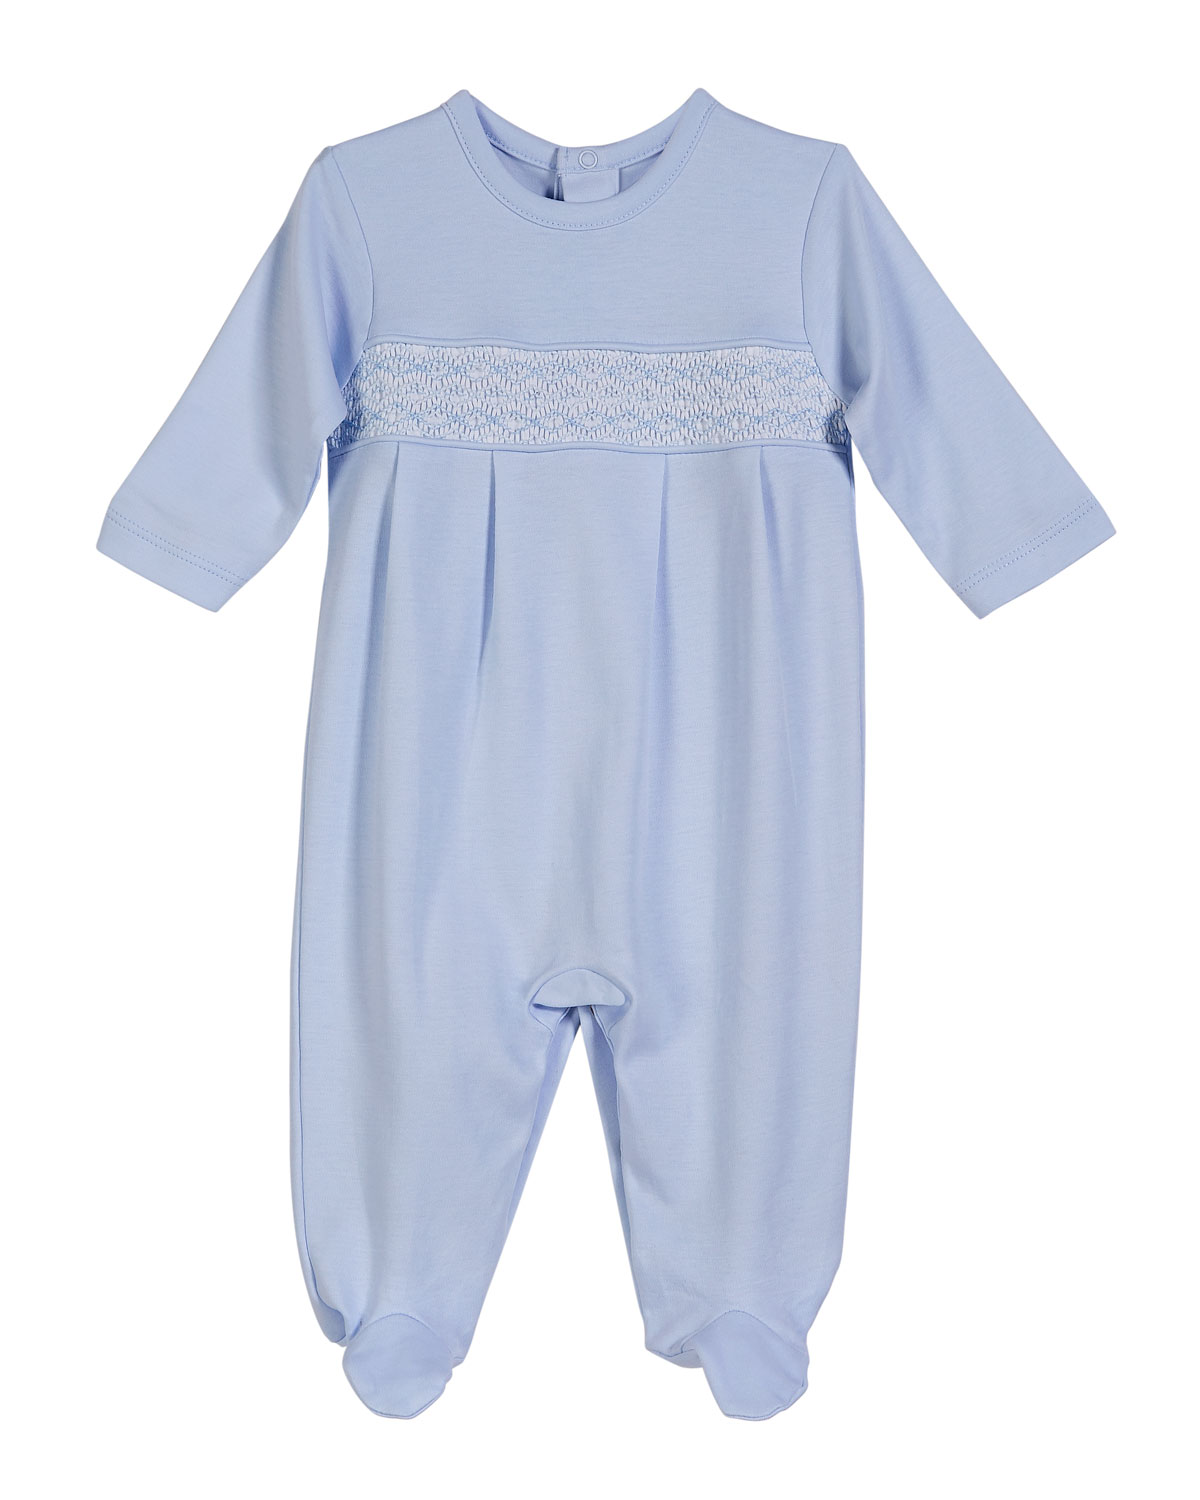 CLB Fall Footie Playsuit, Size Newborn-9 Months